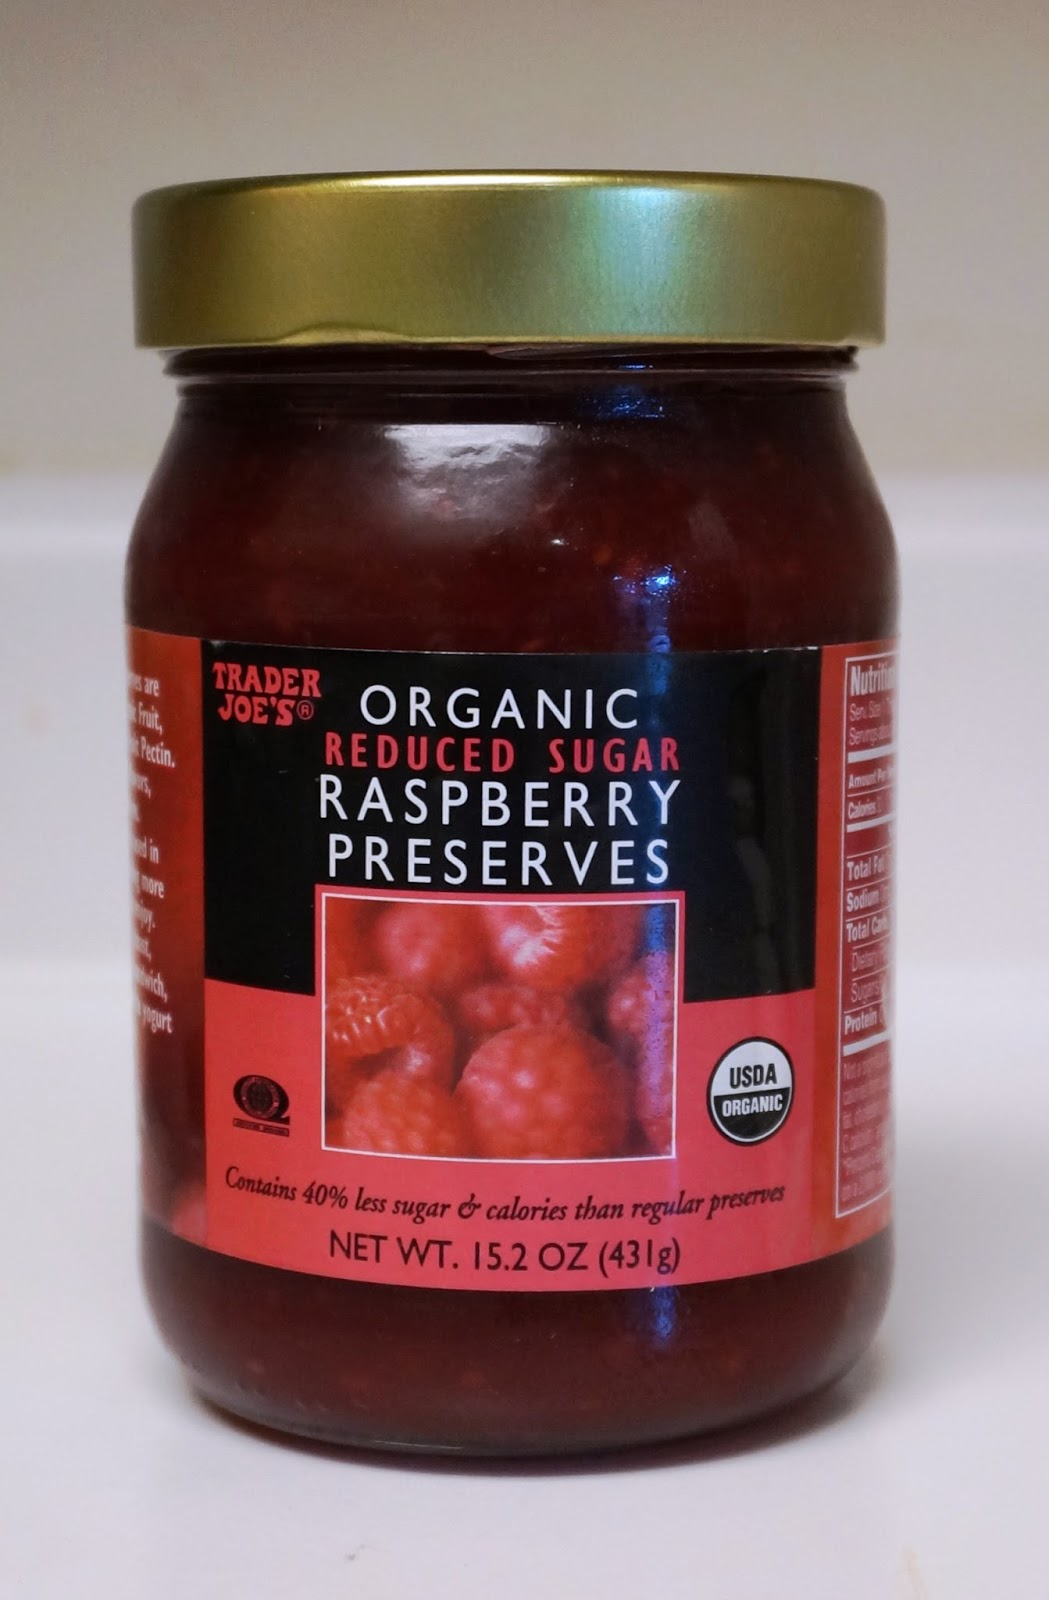 Exploring Trader Joe's: Trader Joe's Organic Reduced Sugar ...